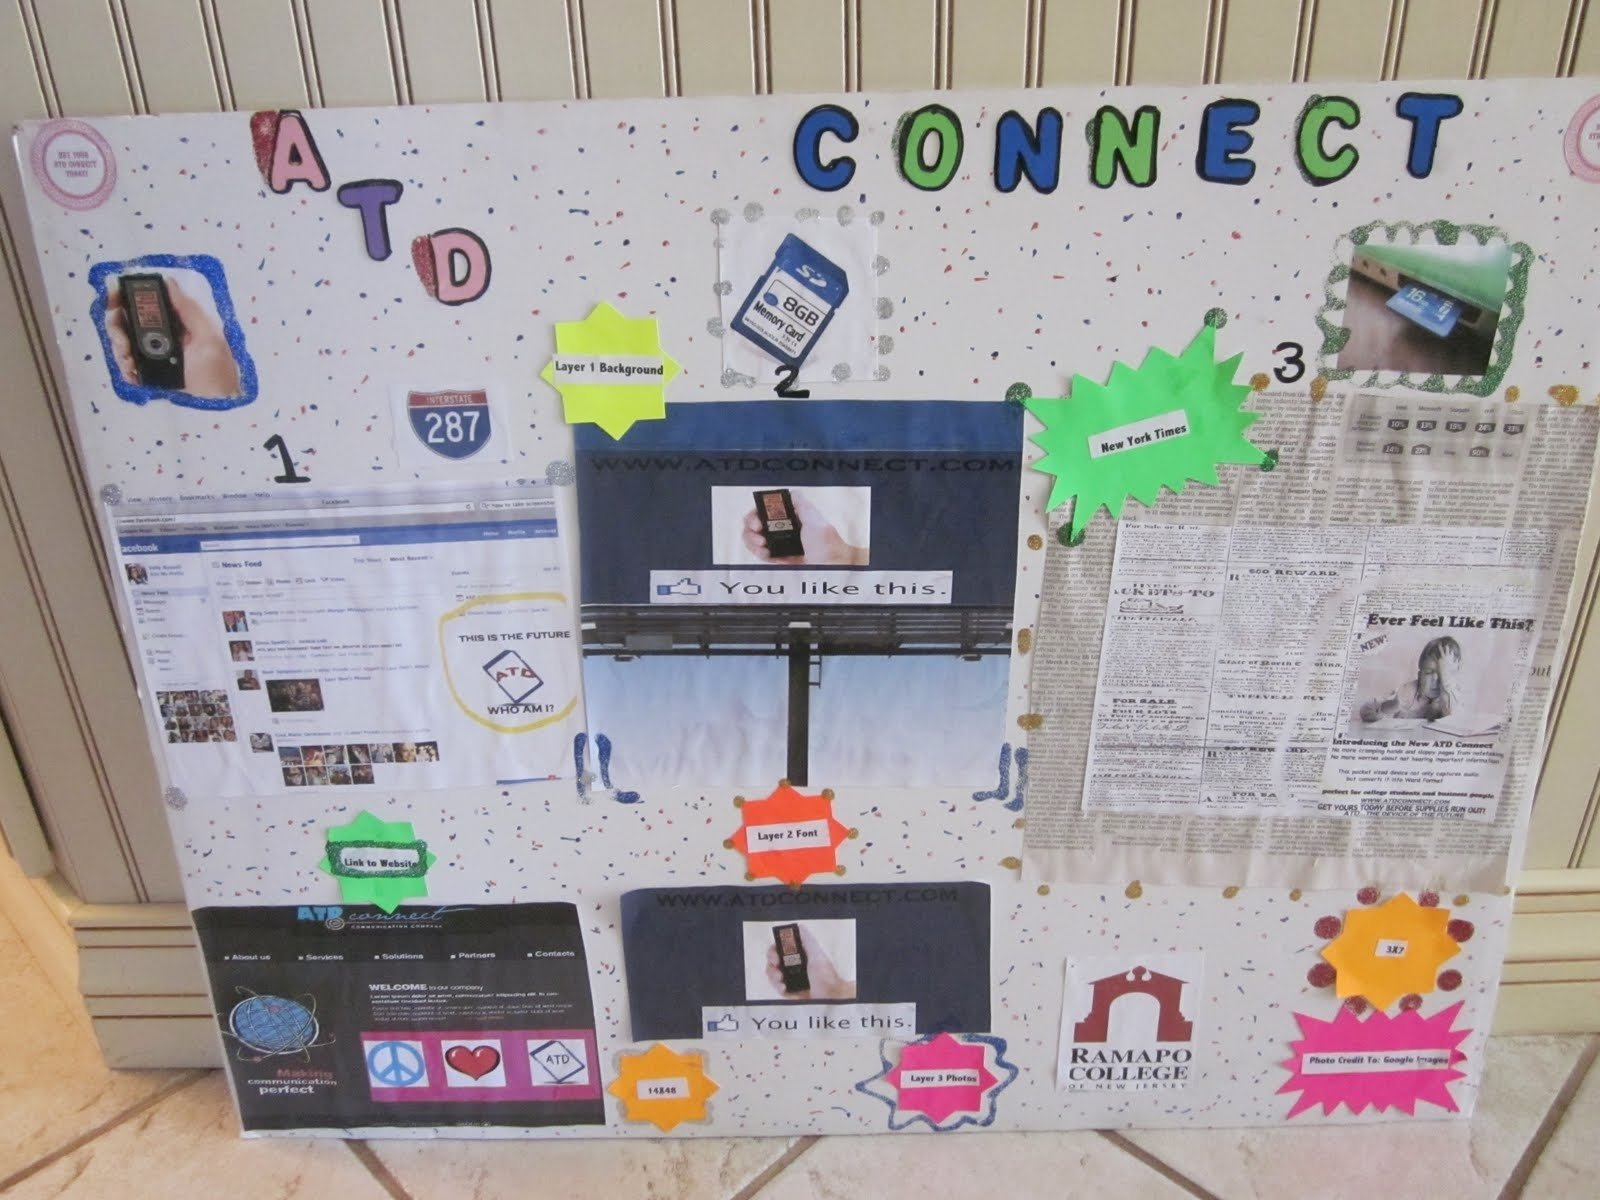 10 Beautiful Cool Poster Ideas For School cool poster board project ideas final dma homes 60871 1 2020